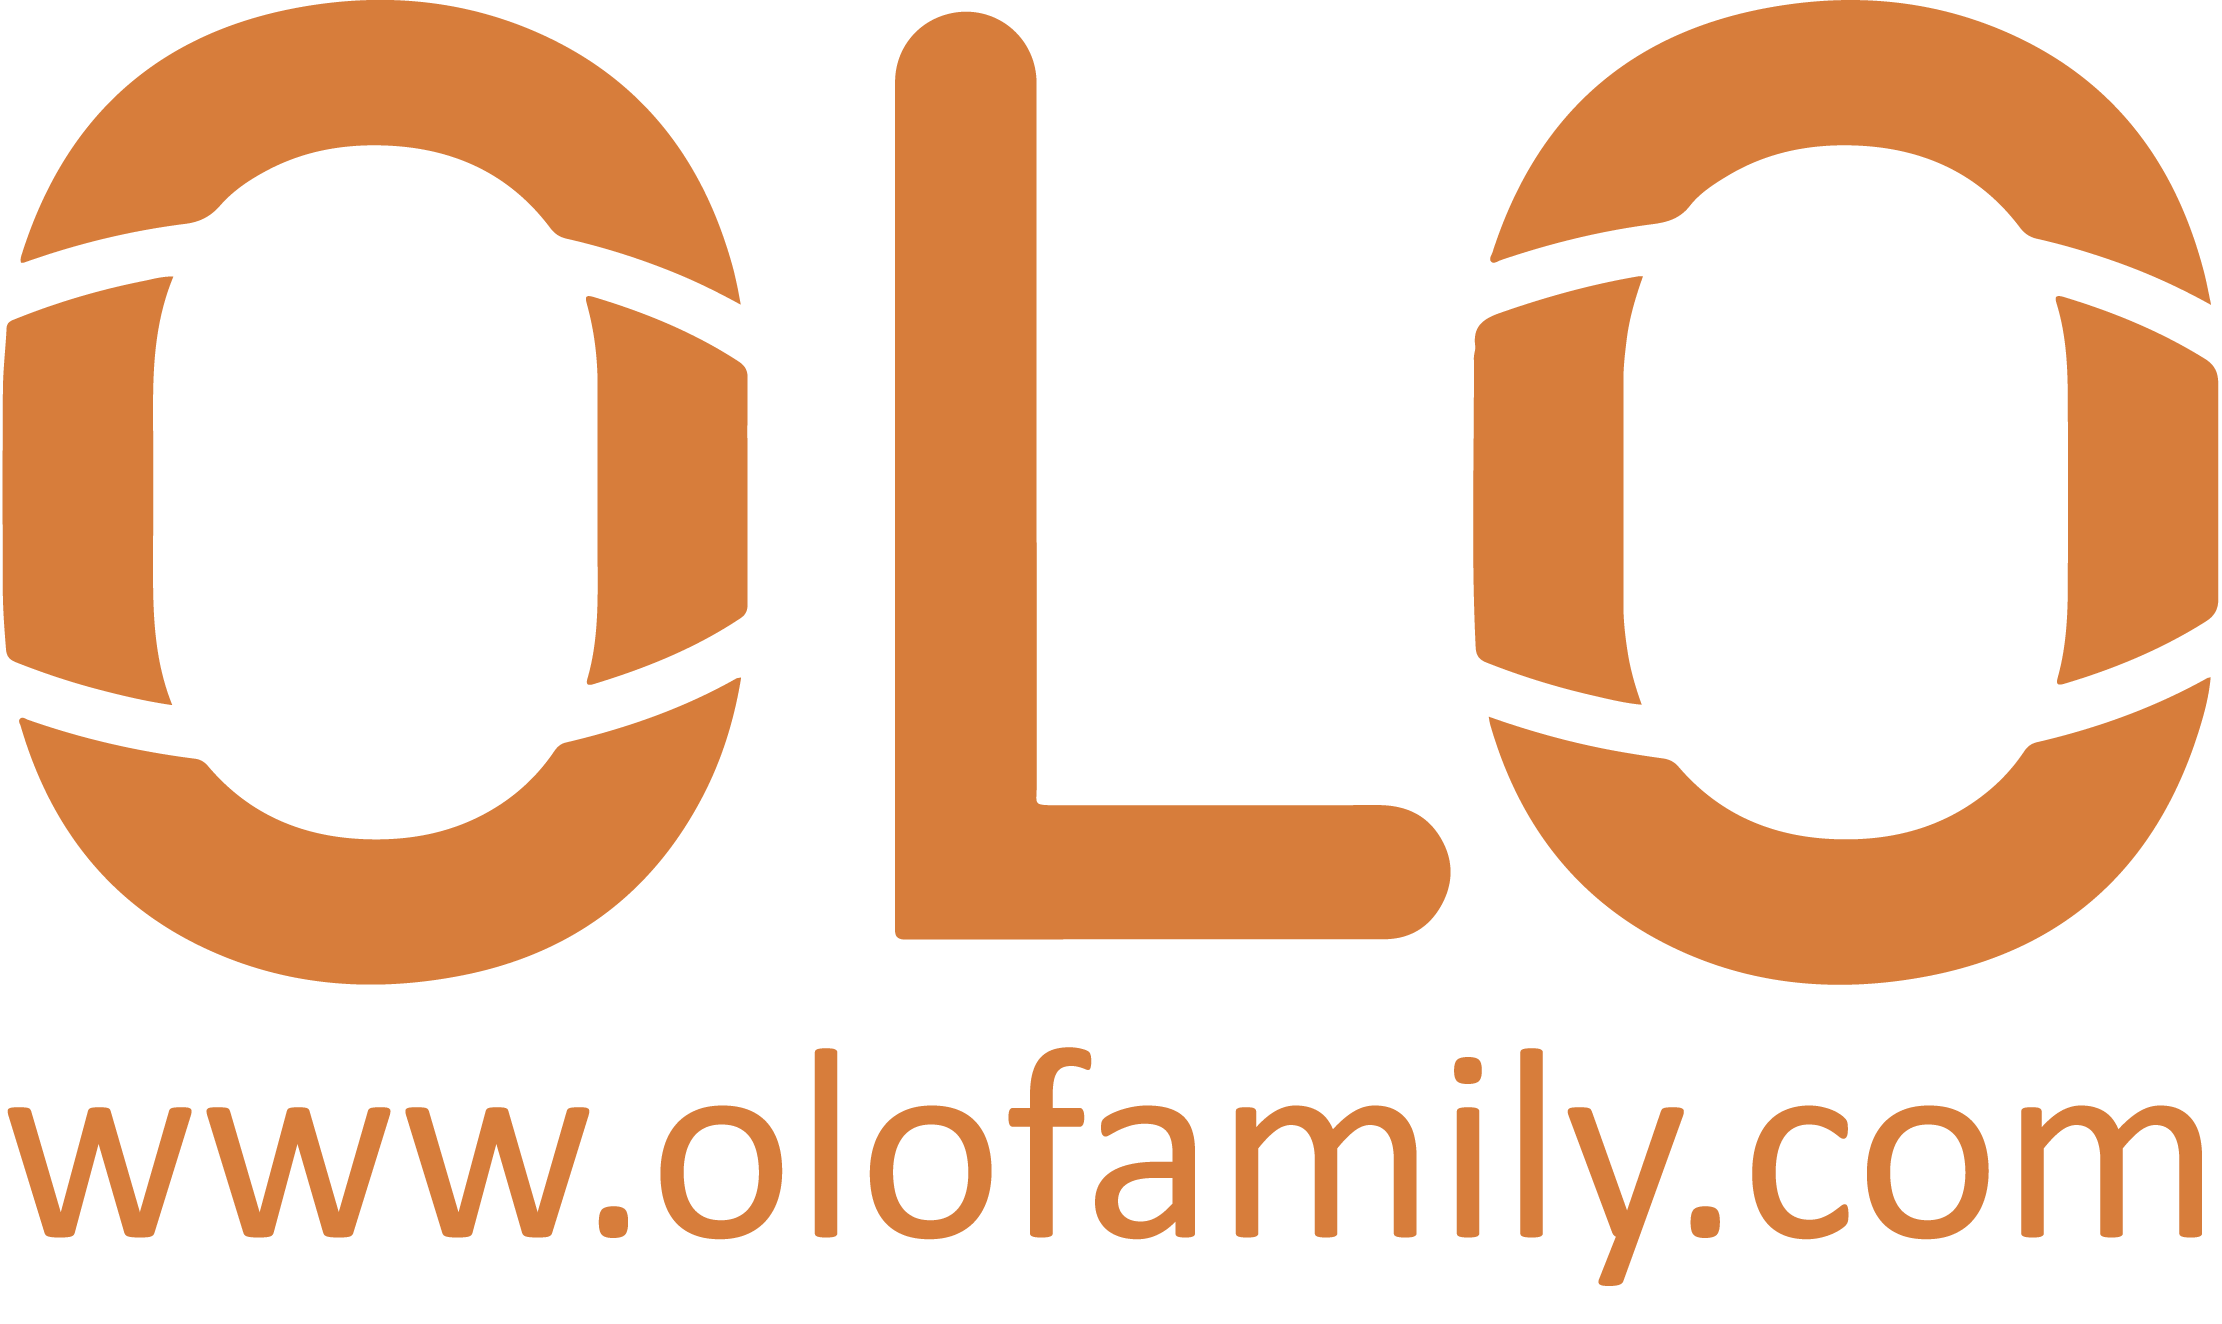 COLO, (Orange Logistics Organization)- International Logistics integrated services Platform